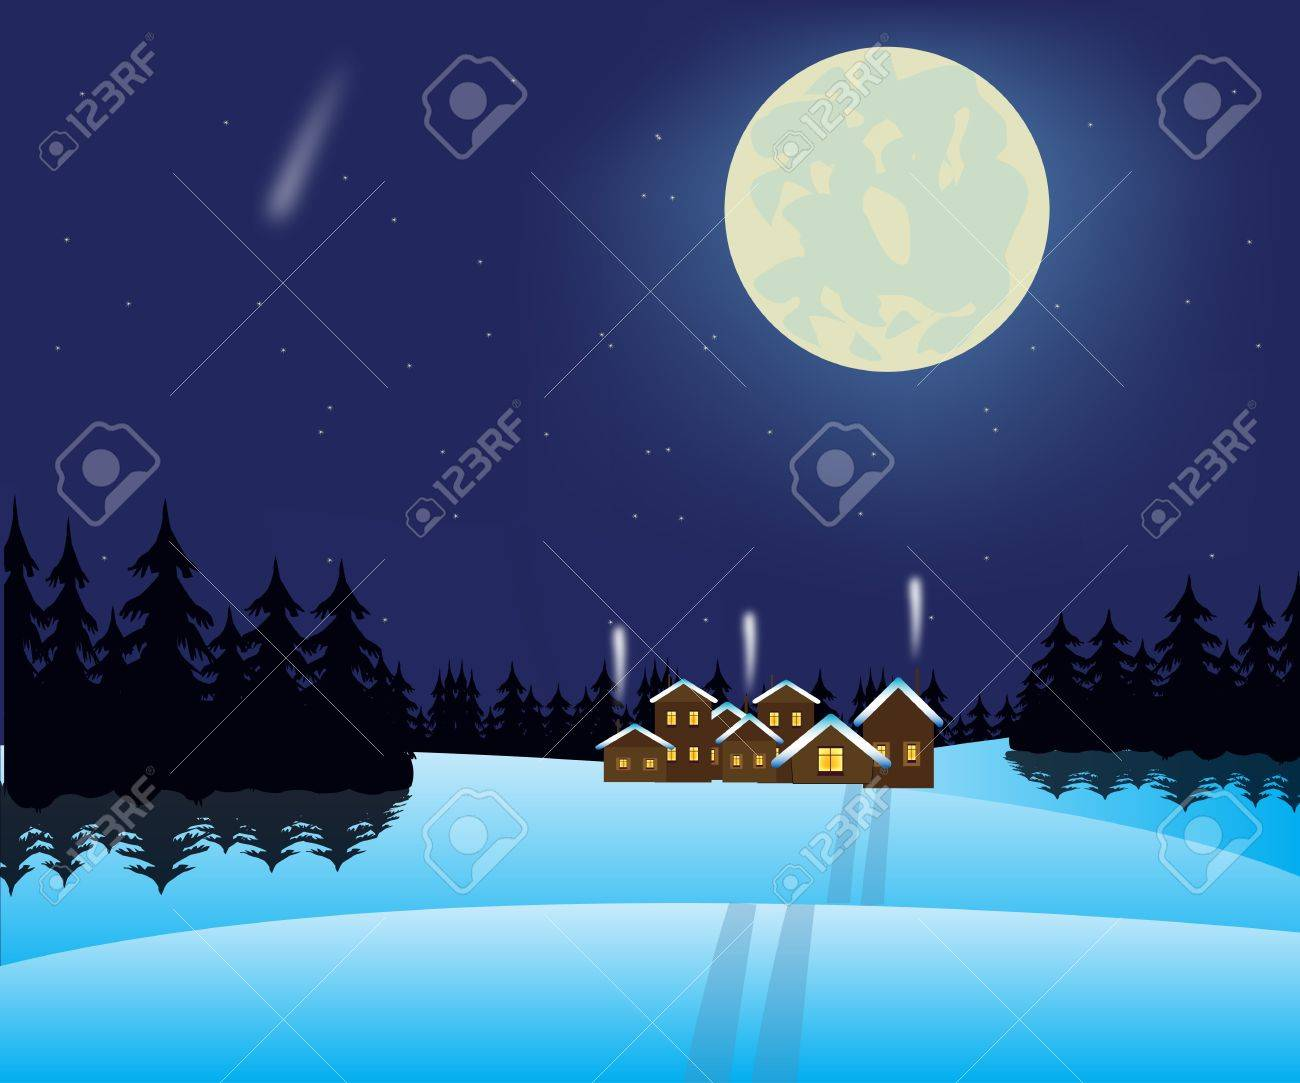 Illustration to moon night and small village in wood Stock Vector - 16358371